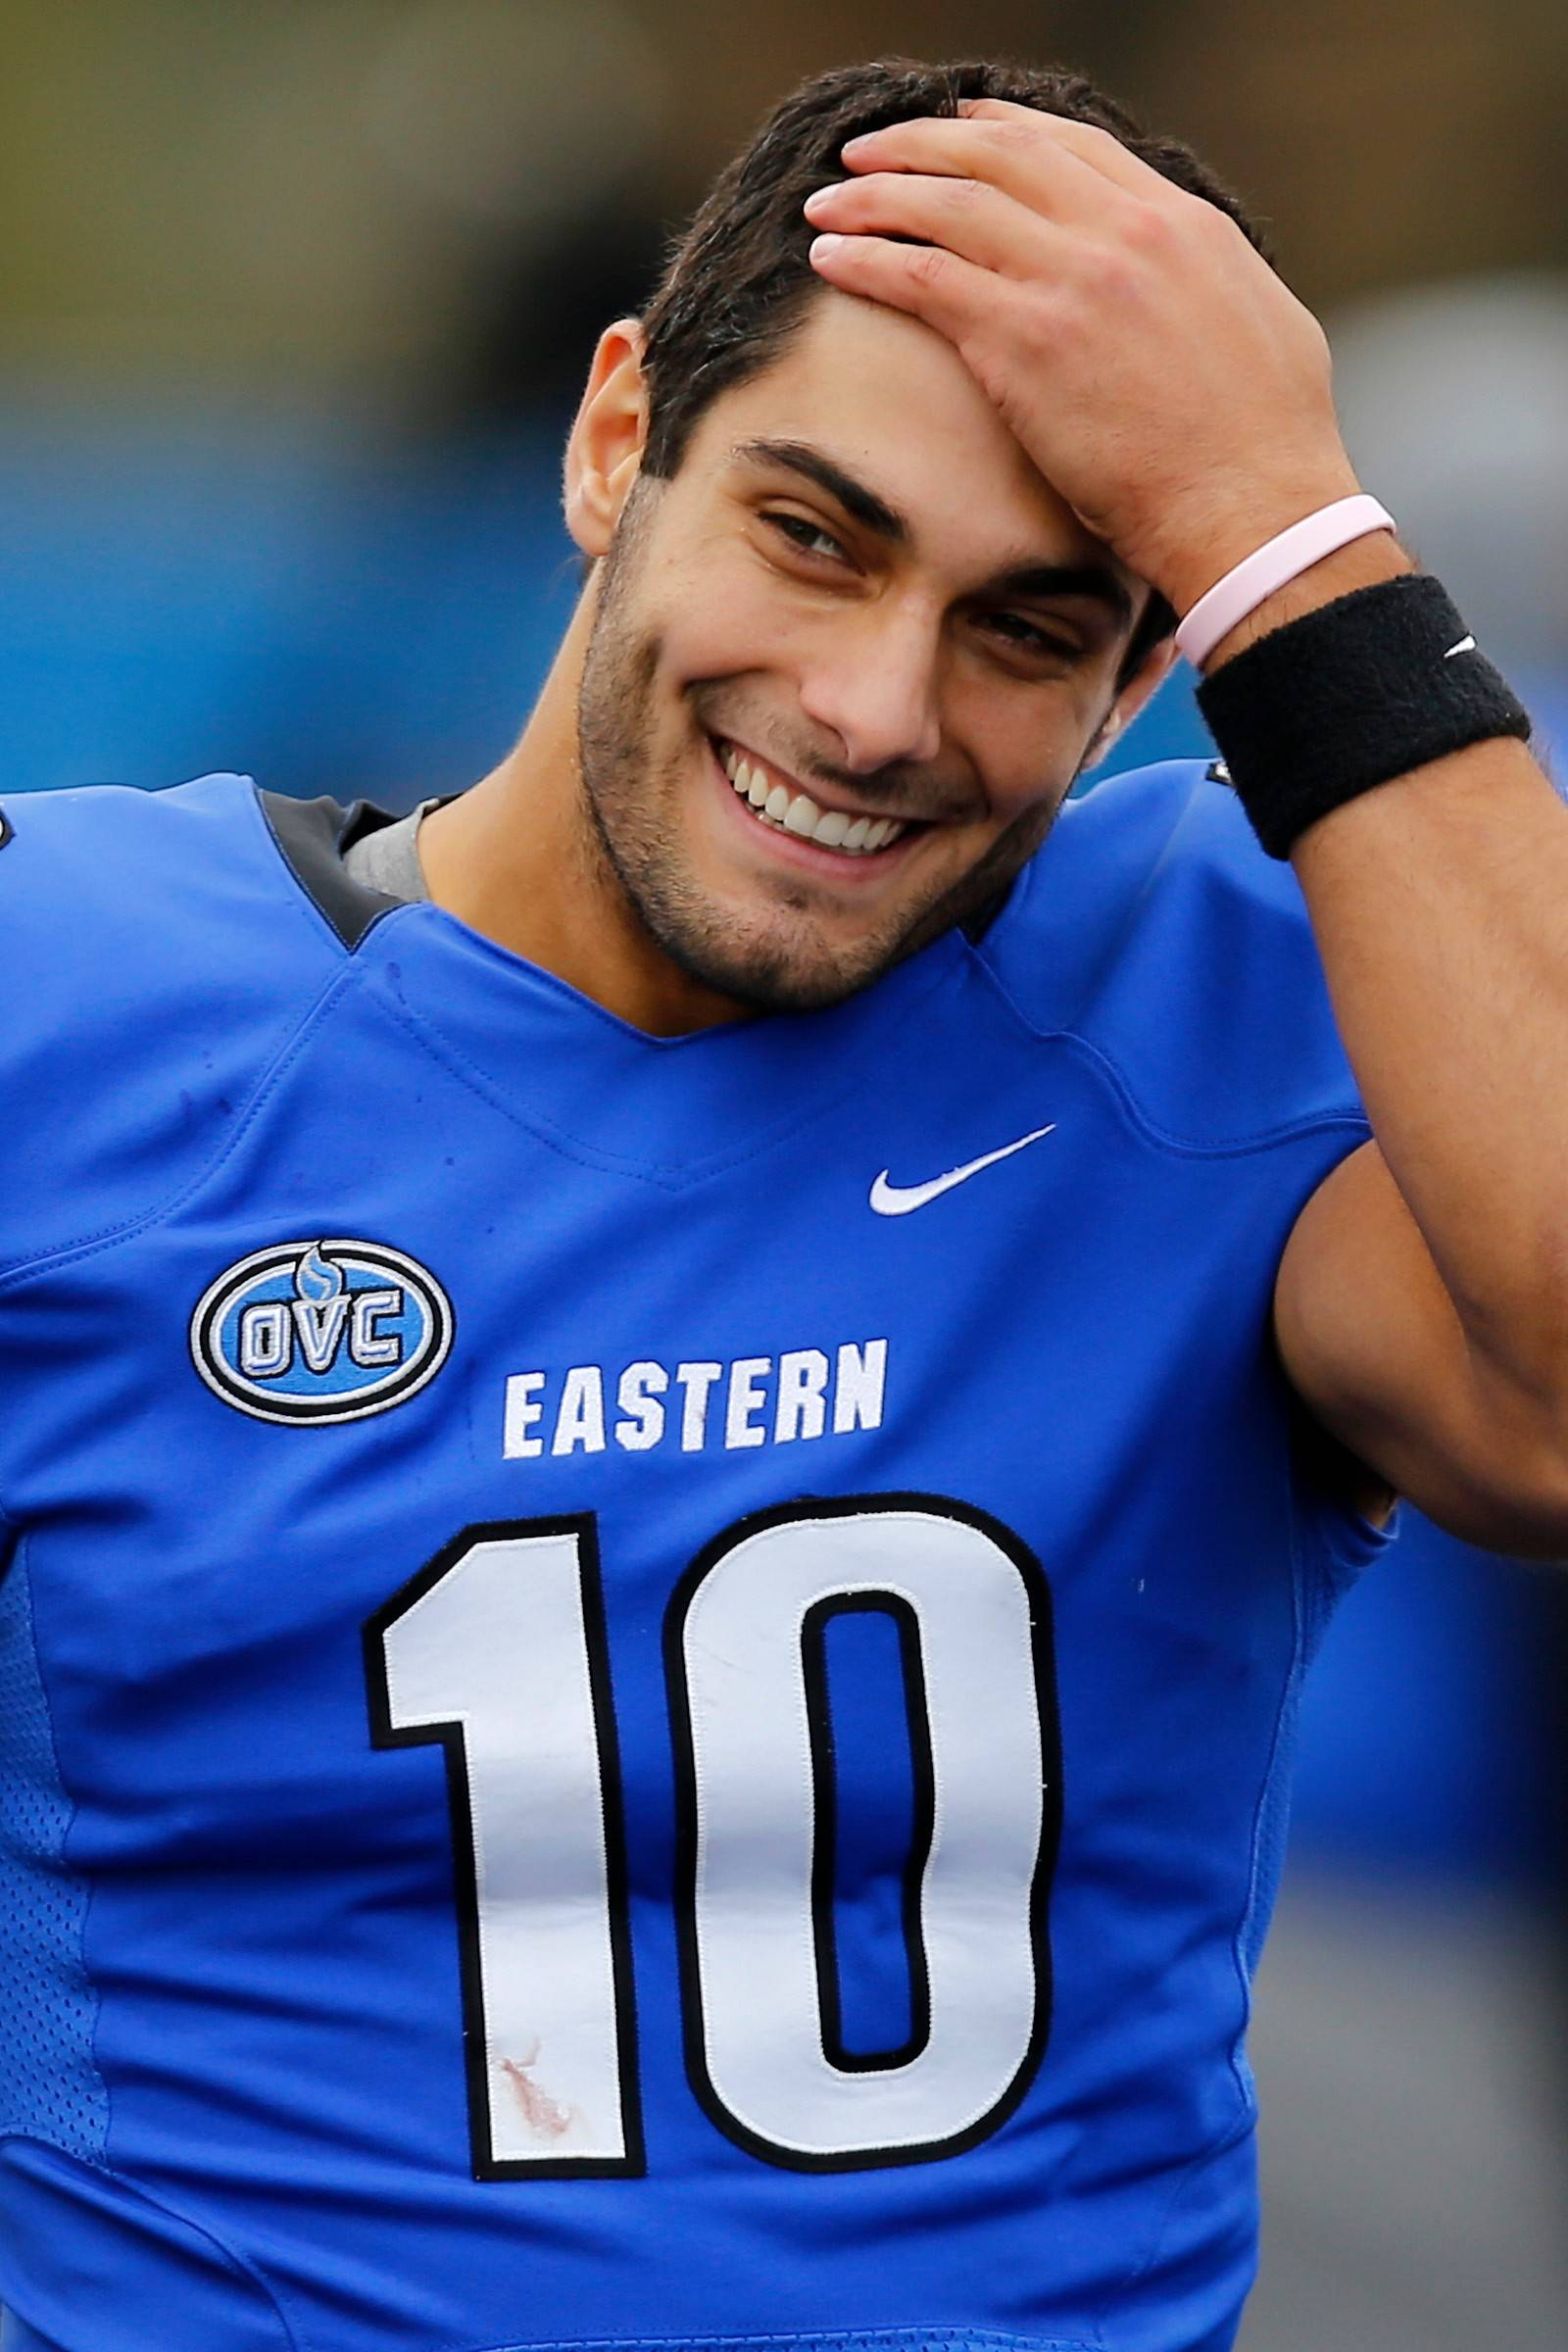 Imrem has hometown pride in Jimmy Garoppolo